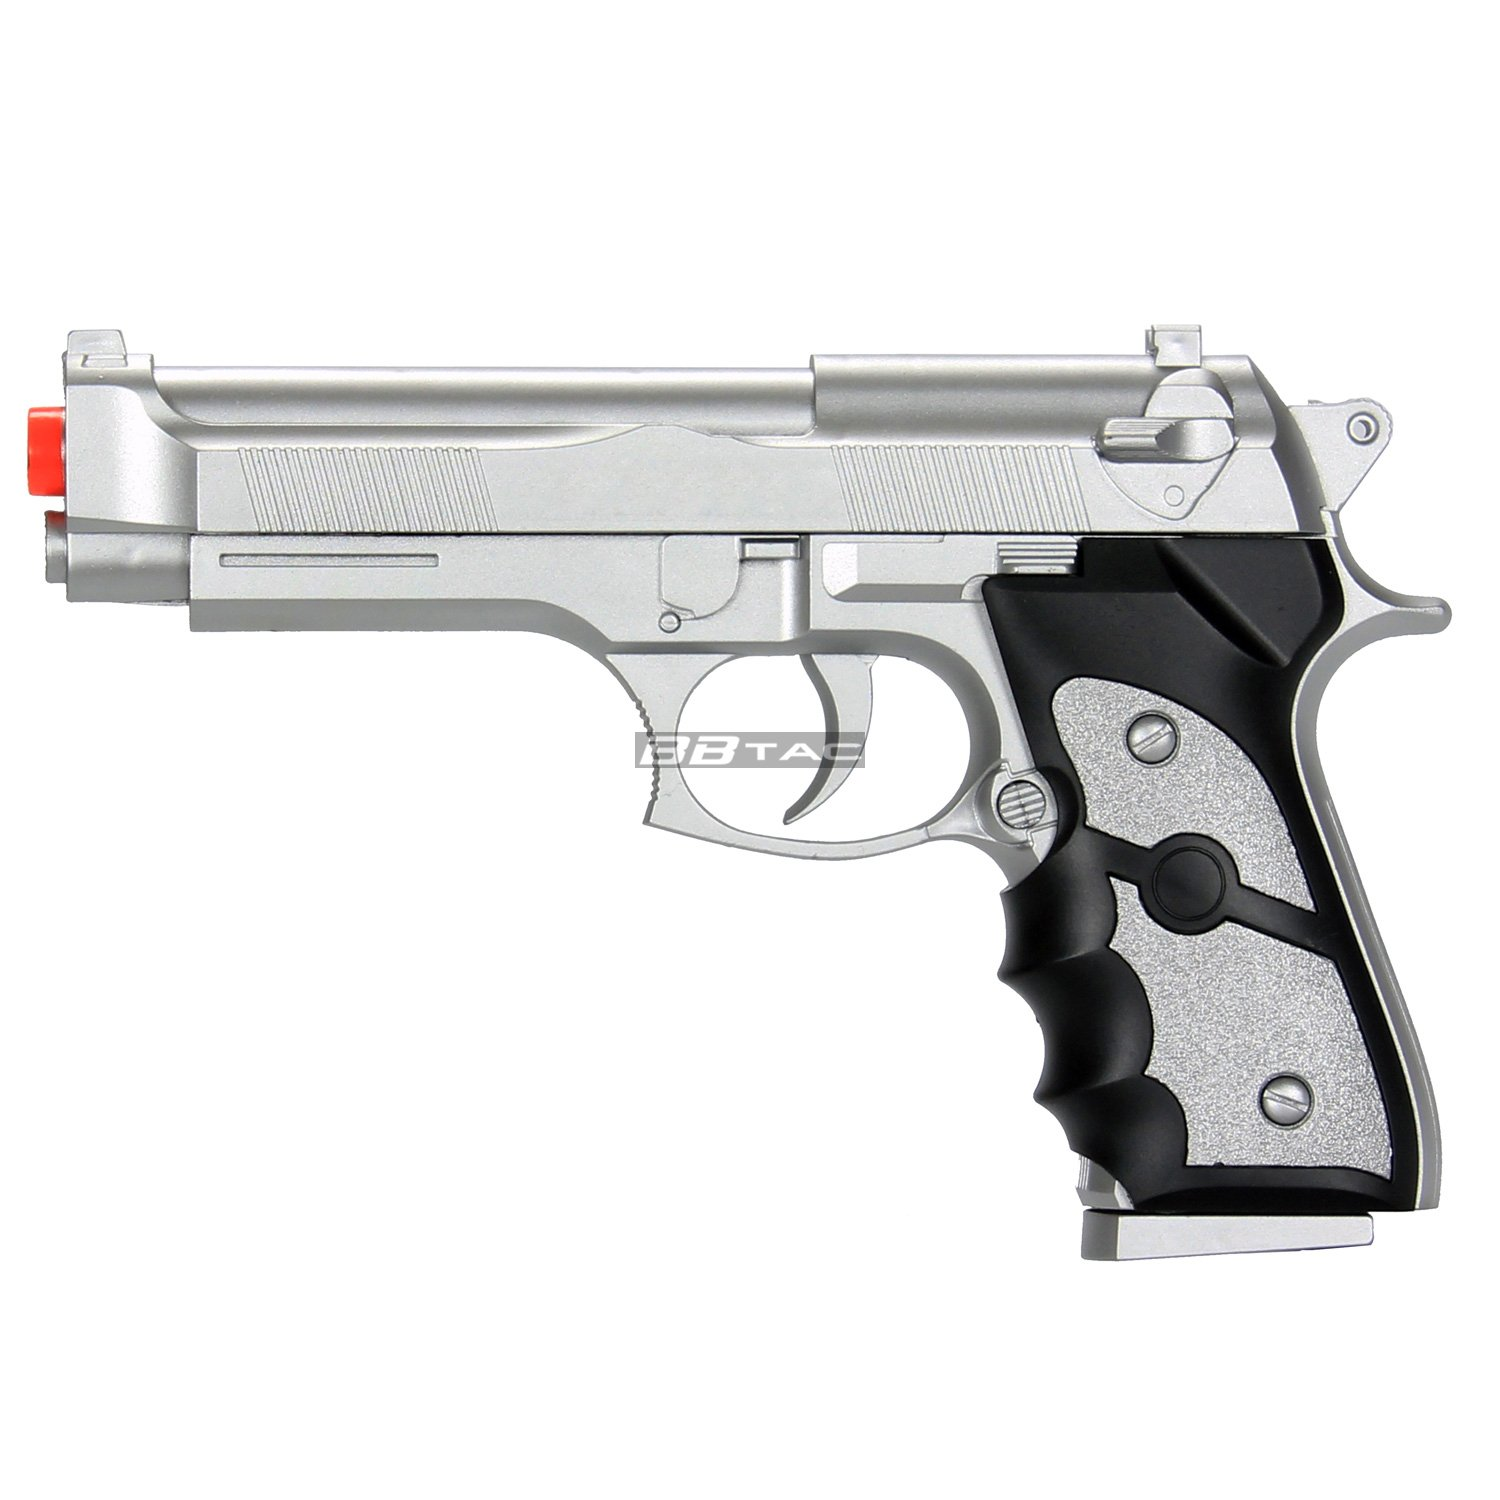 BBTac Airsoft Spring Pistol Silver 150 FPS Spring Loaded Power Airsoft Gun